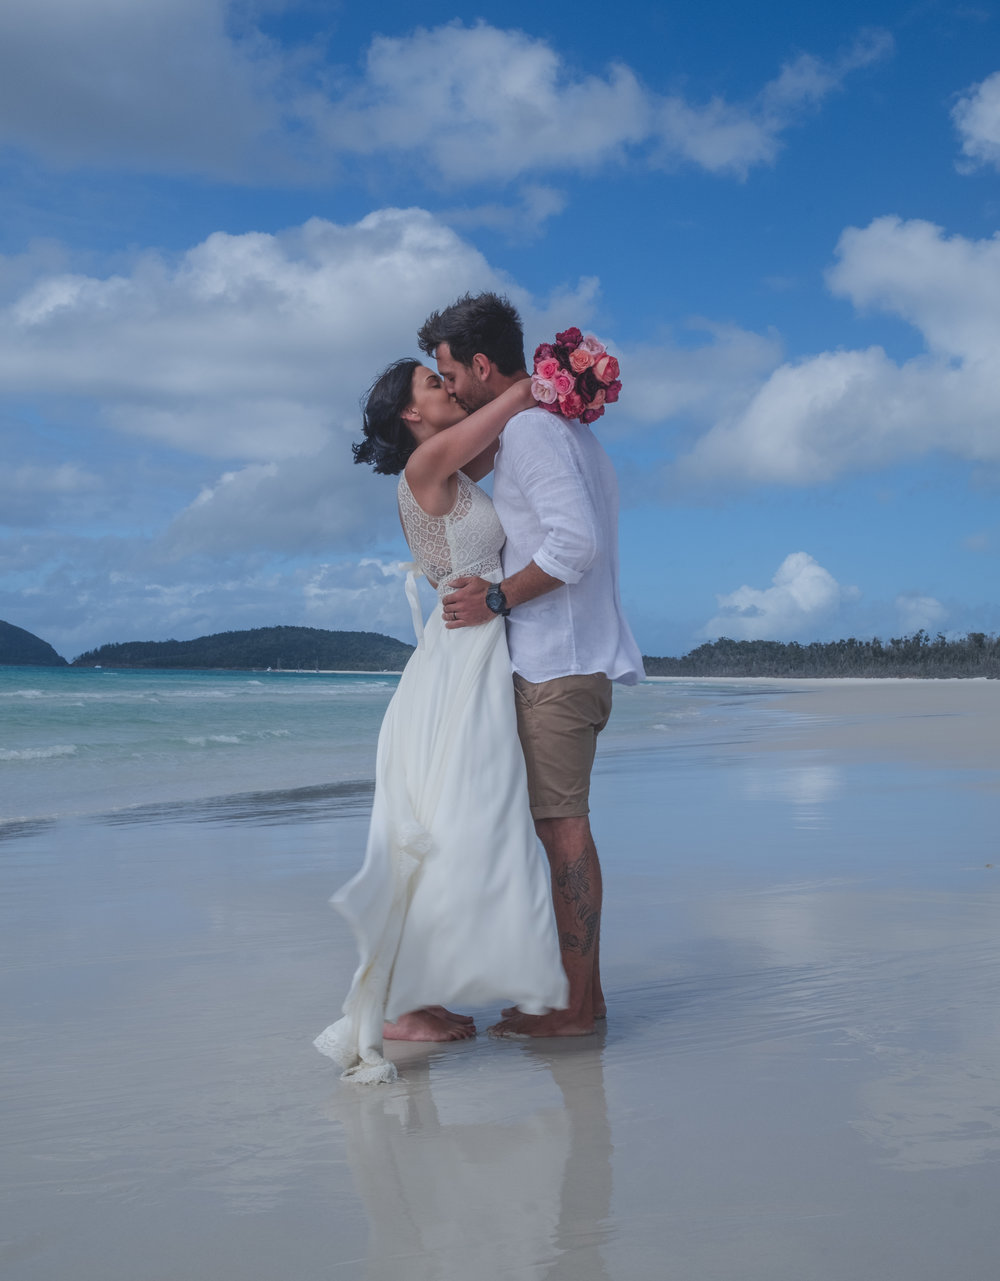 Reino & Lisa, Whitehaven Beach 23.6.18